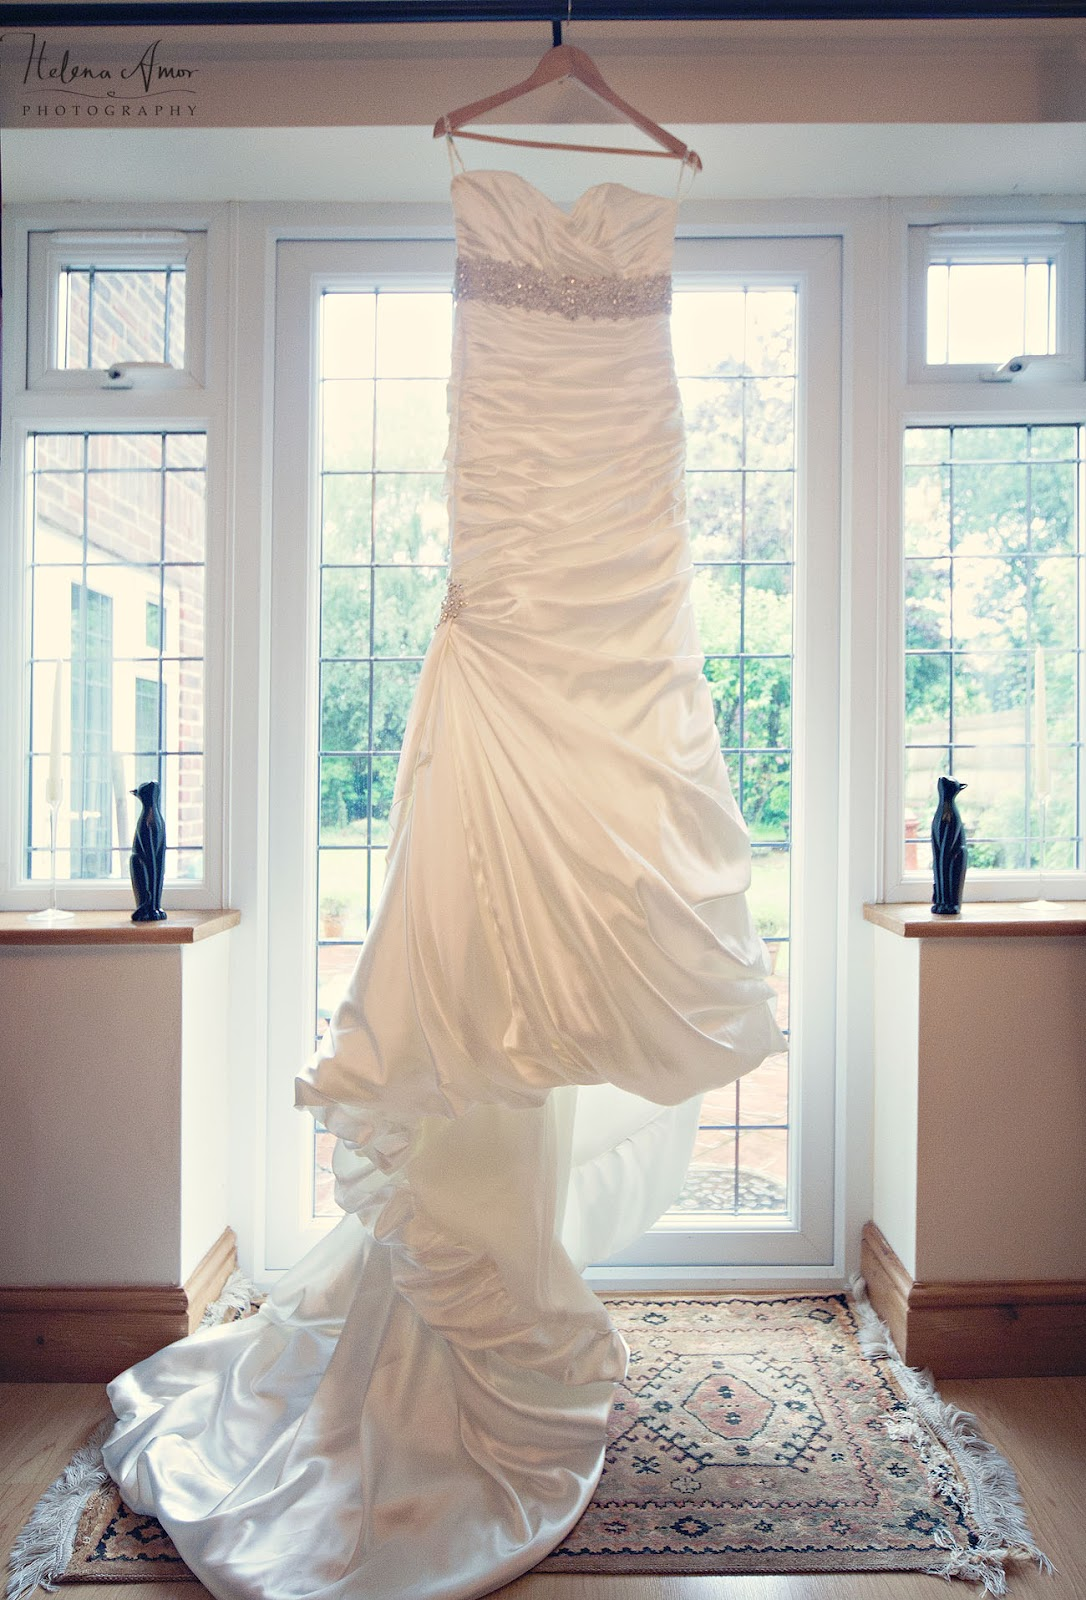 Wedding Dress For   Southampton : Creative and stylish london wedding photography by helena